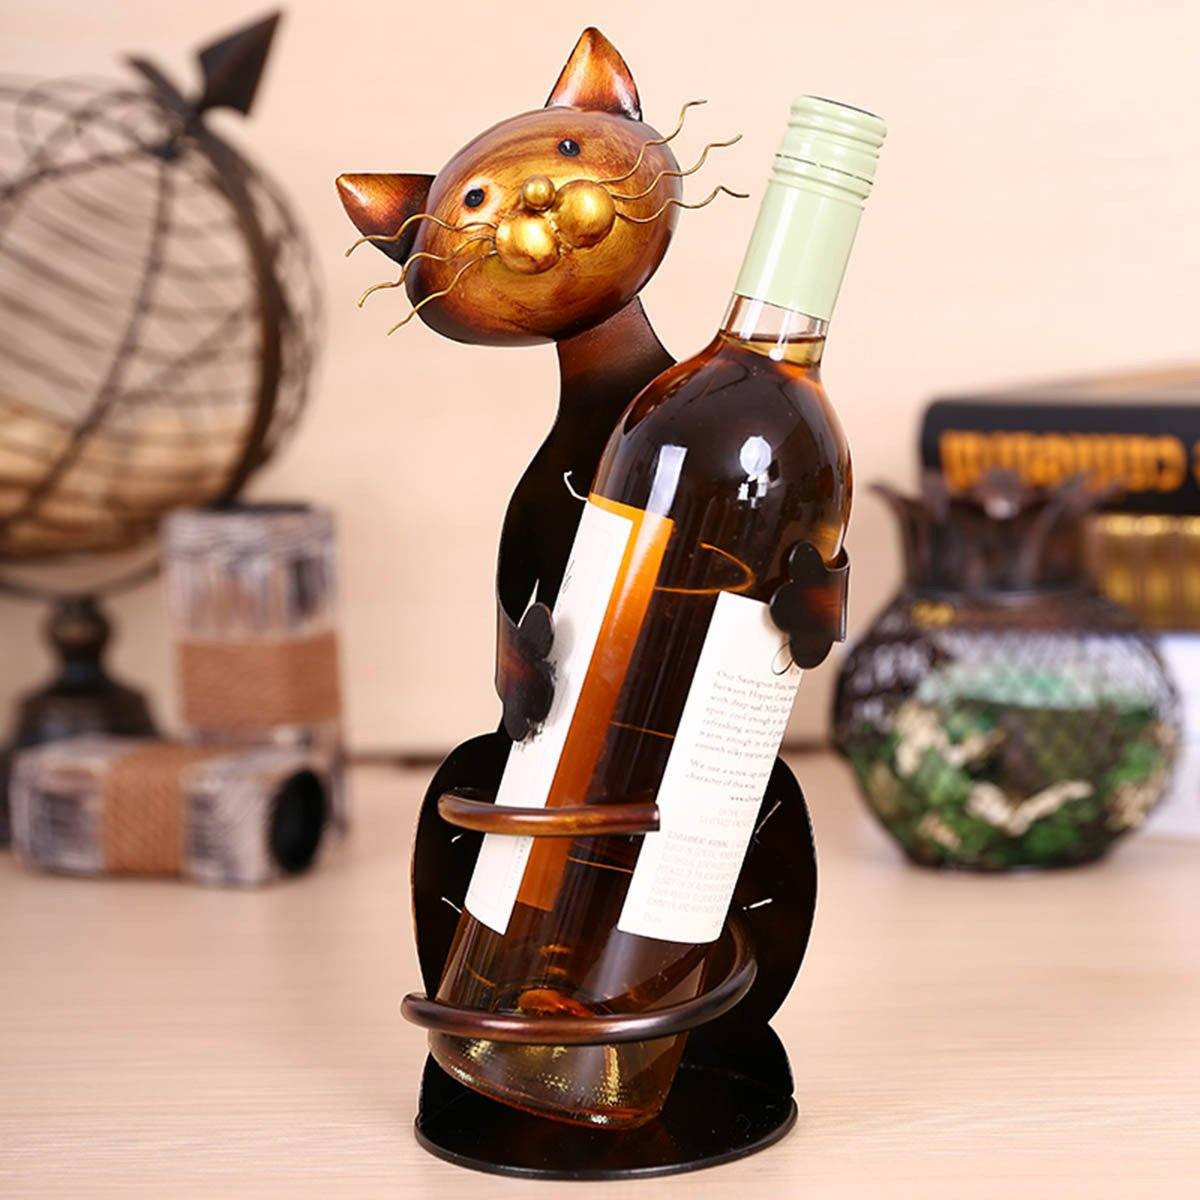 Slanted Cat Wine Bottle Holder Sculpture